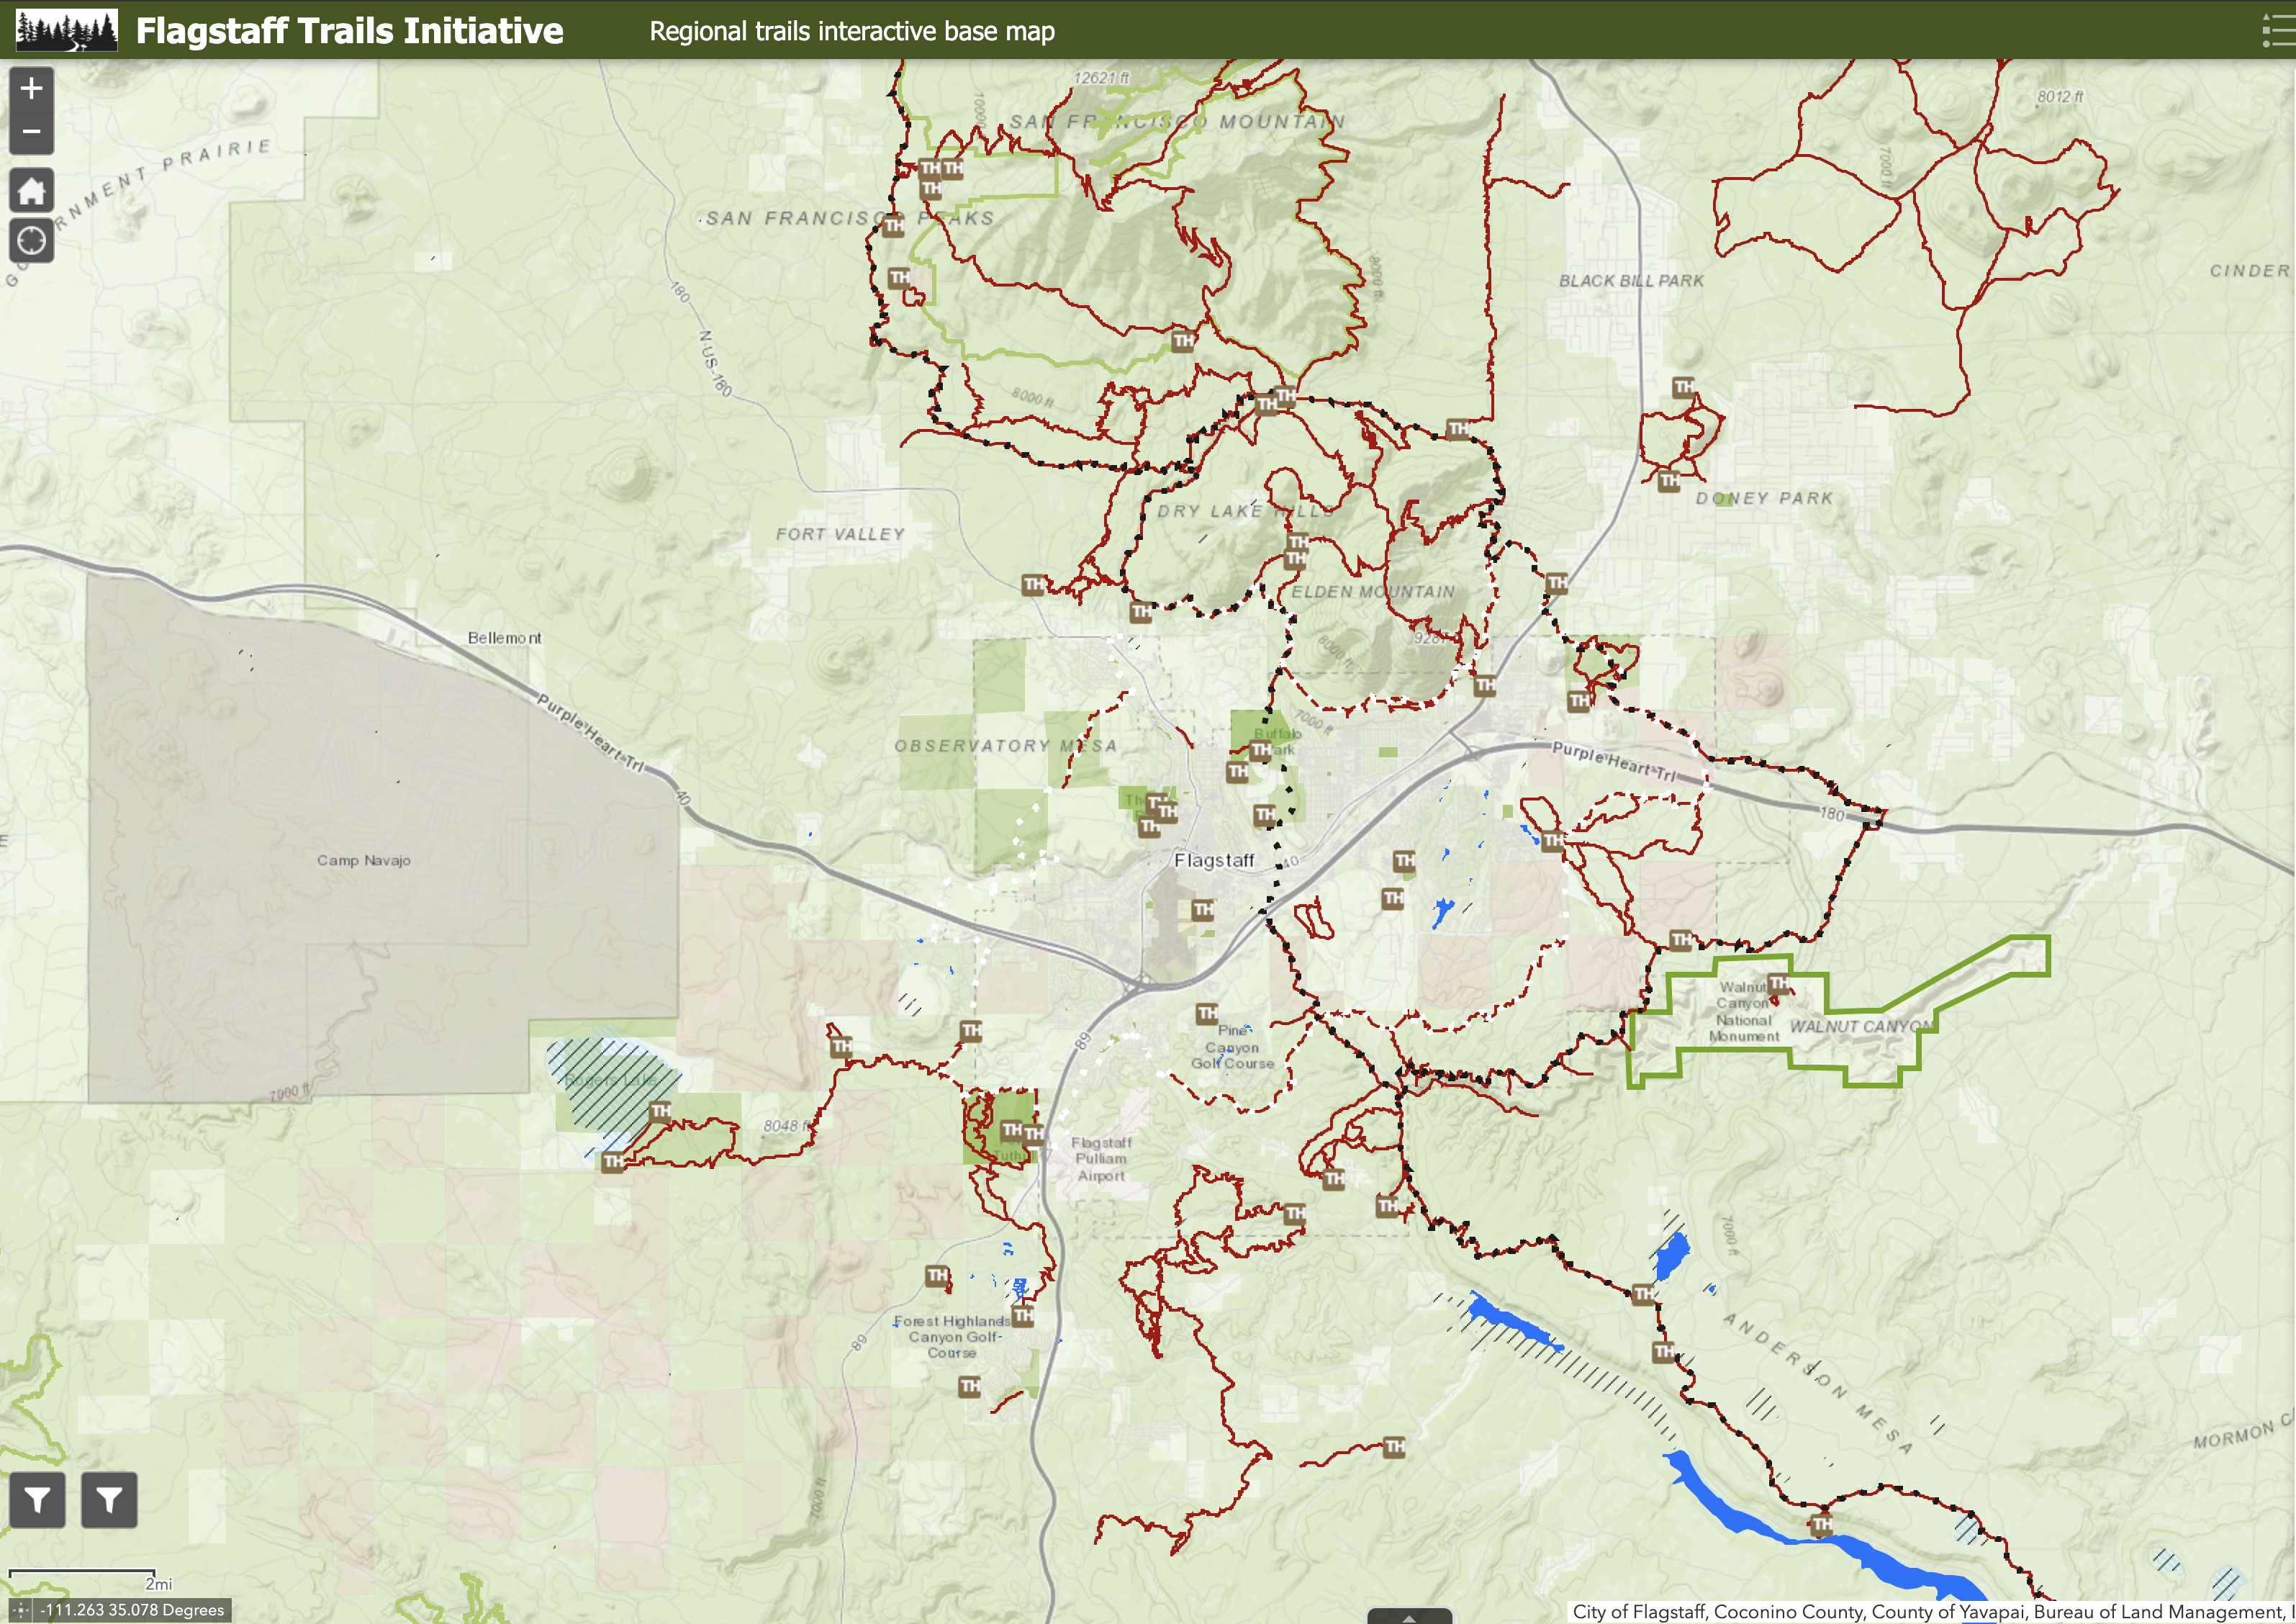 Flagstaff Trails Initiative map screenshot